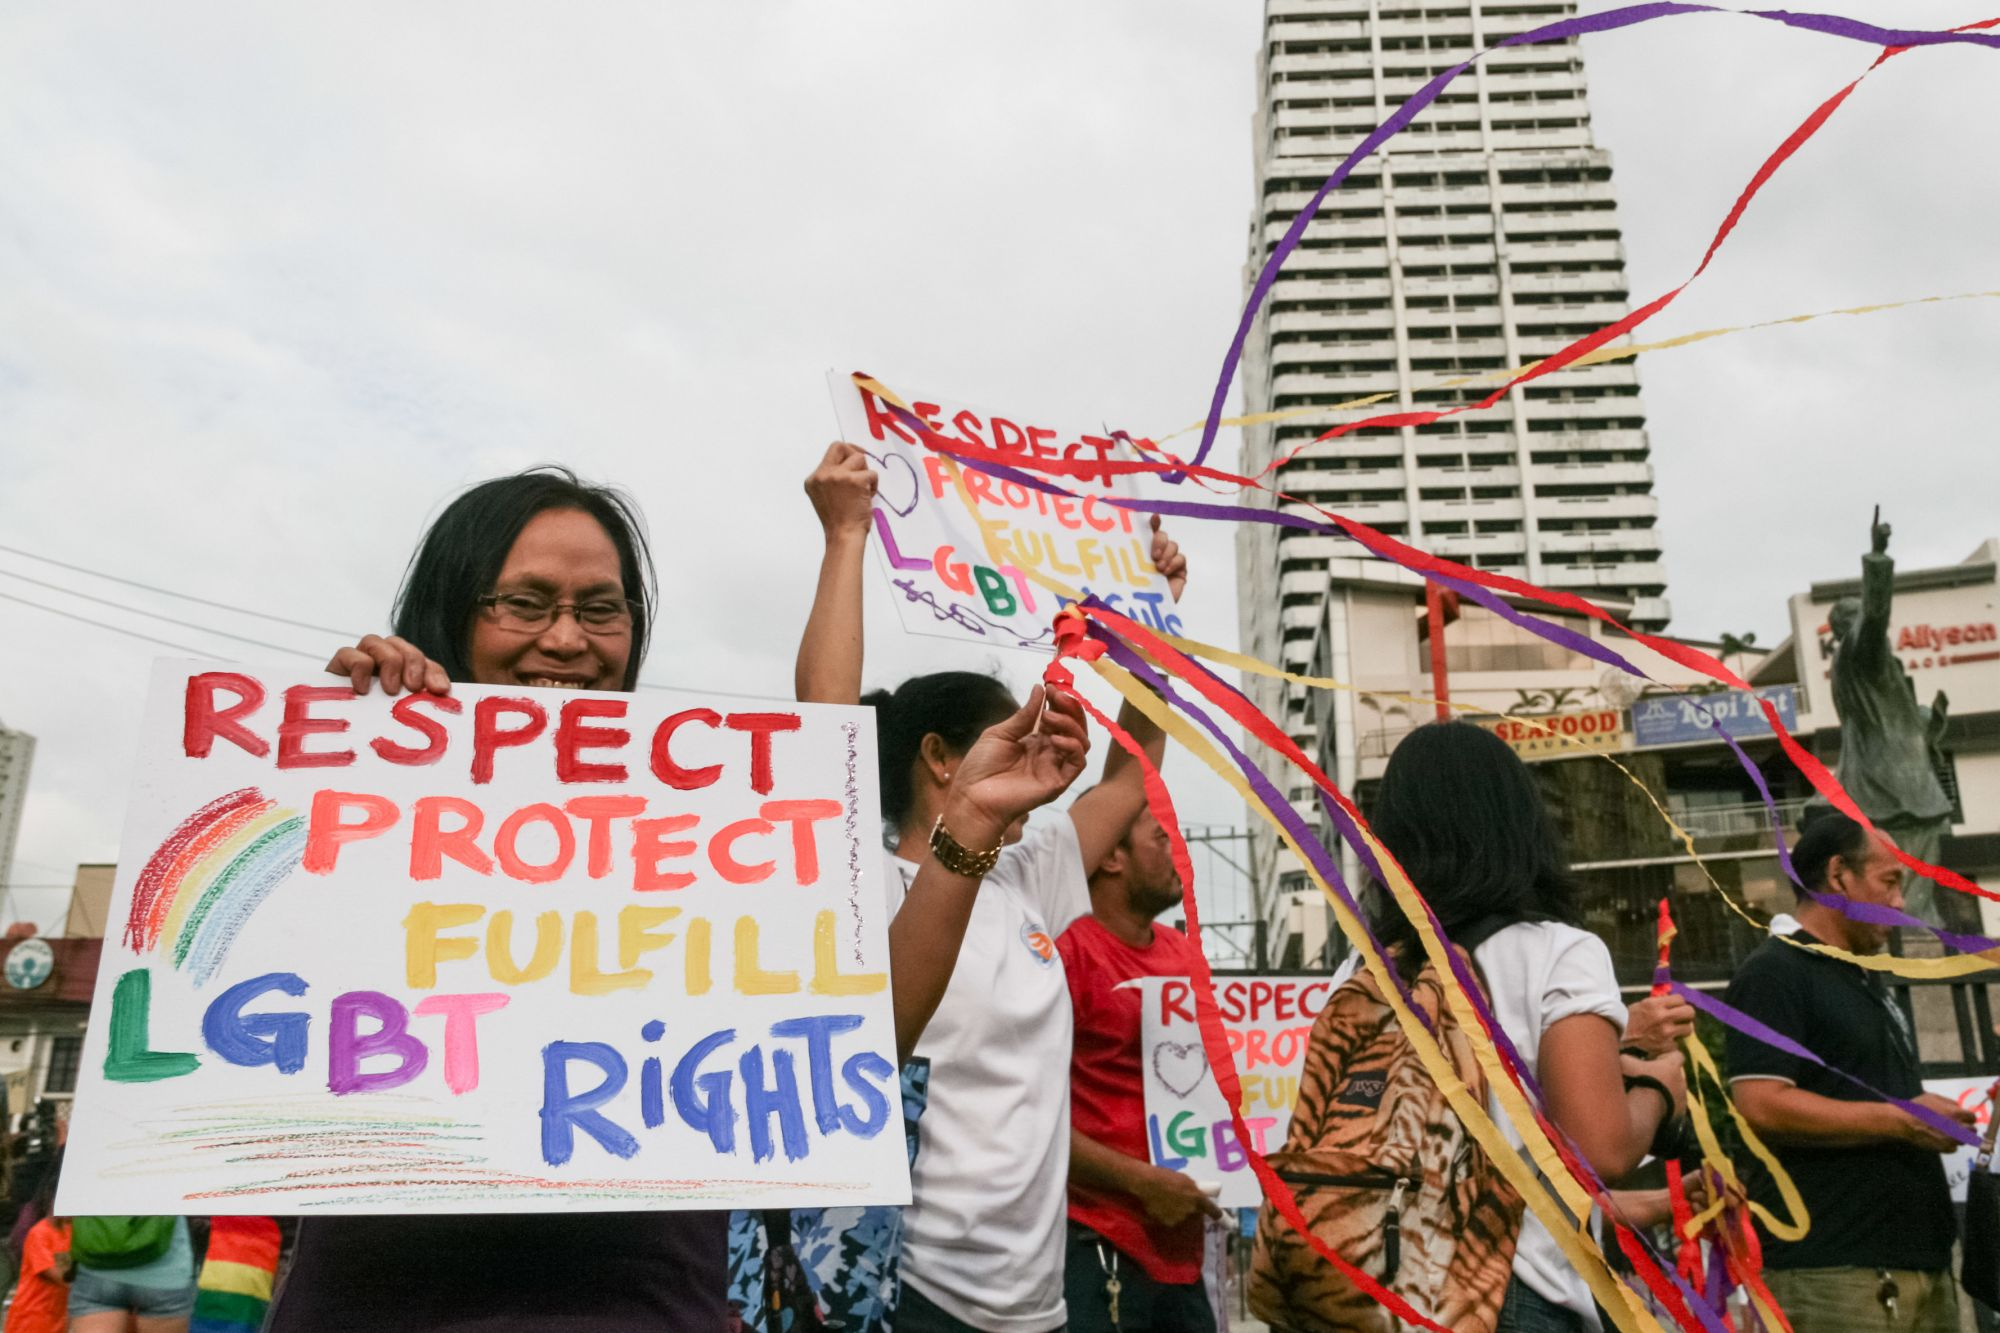 Gay Pride attendees display posters asking for equal rights for the LGBT community at the Remedios Circle in Manila. -- Dubbed as the longest running Gay Pride Parade in Asia, the 2013 Manila Pride march was attended by different LGBT groups asking for equal rights and the passage of the Anti-Discrimination Bill. Photo: J Gerard Seguia/NurPhoto (Photo by NurPhoto/Corbis via Getty Images)